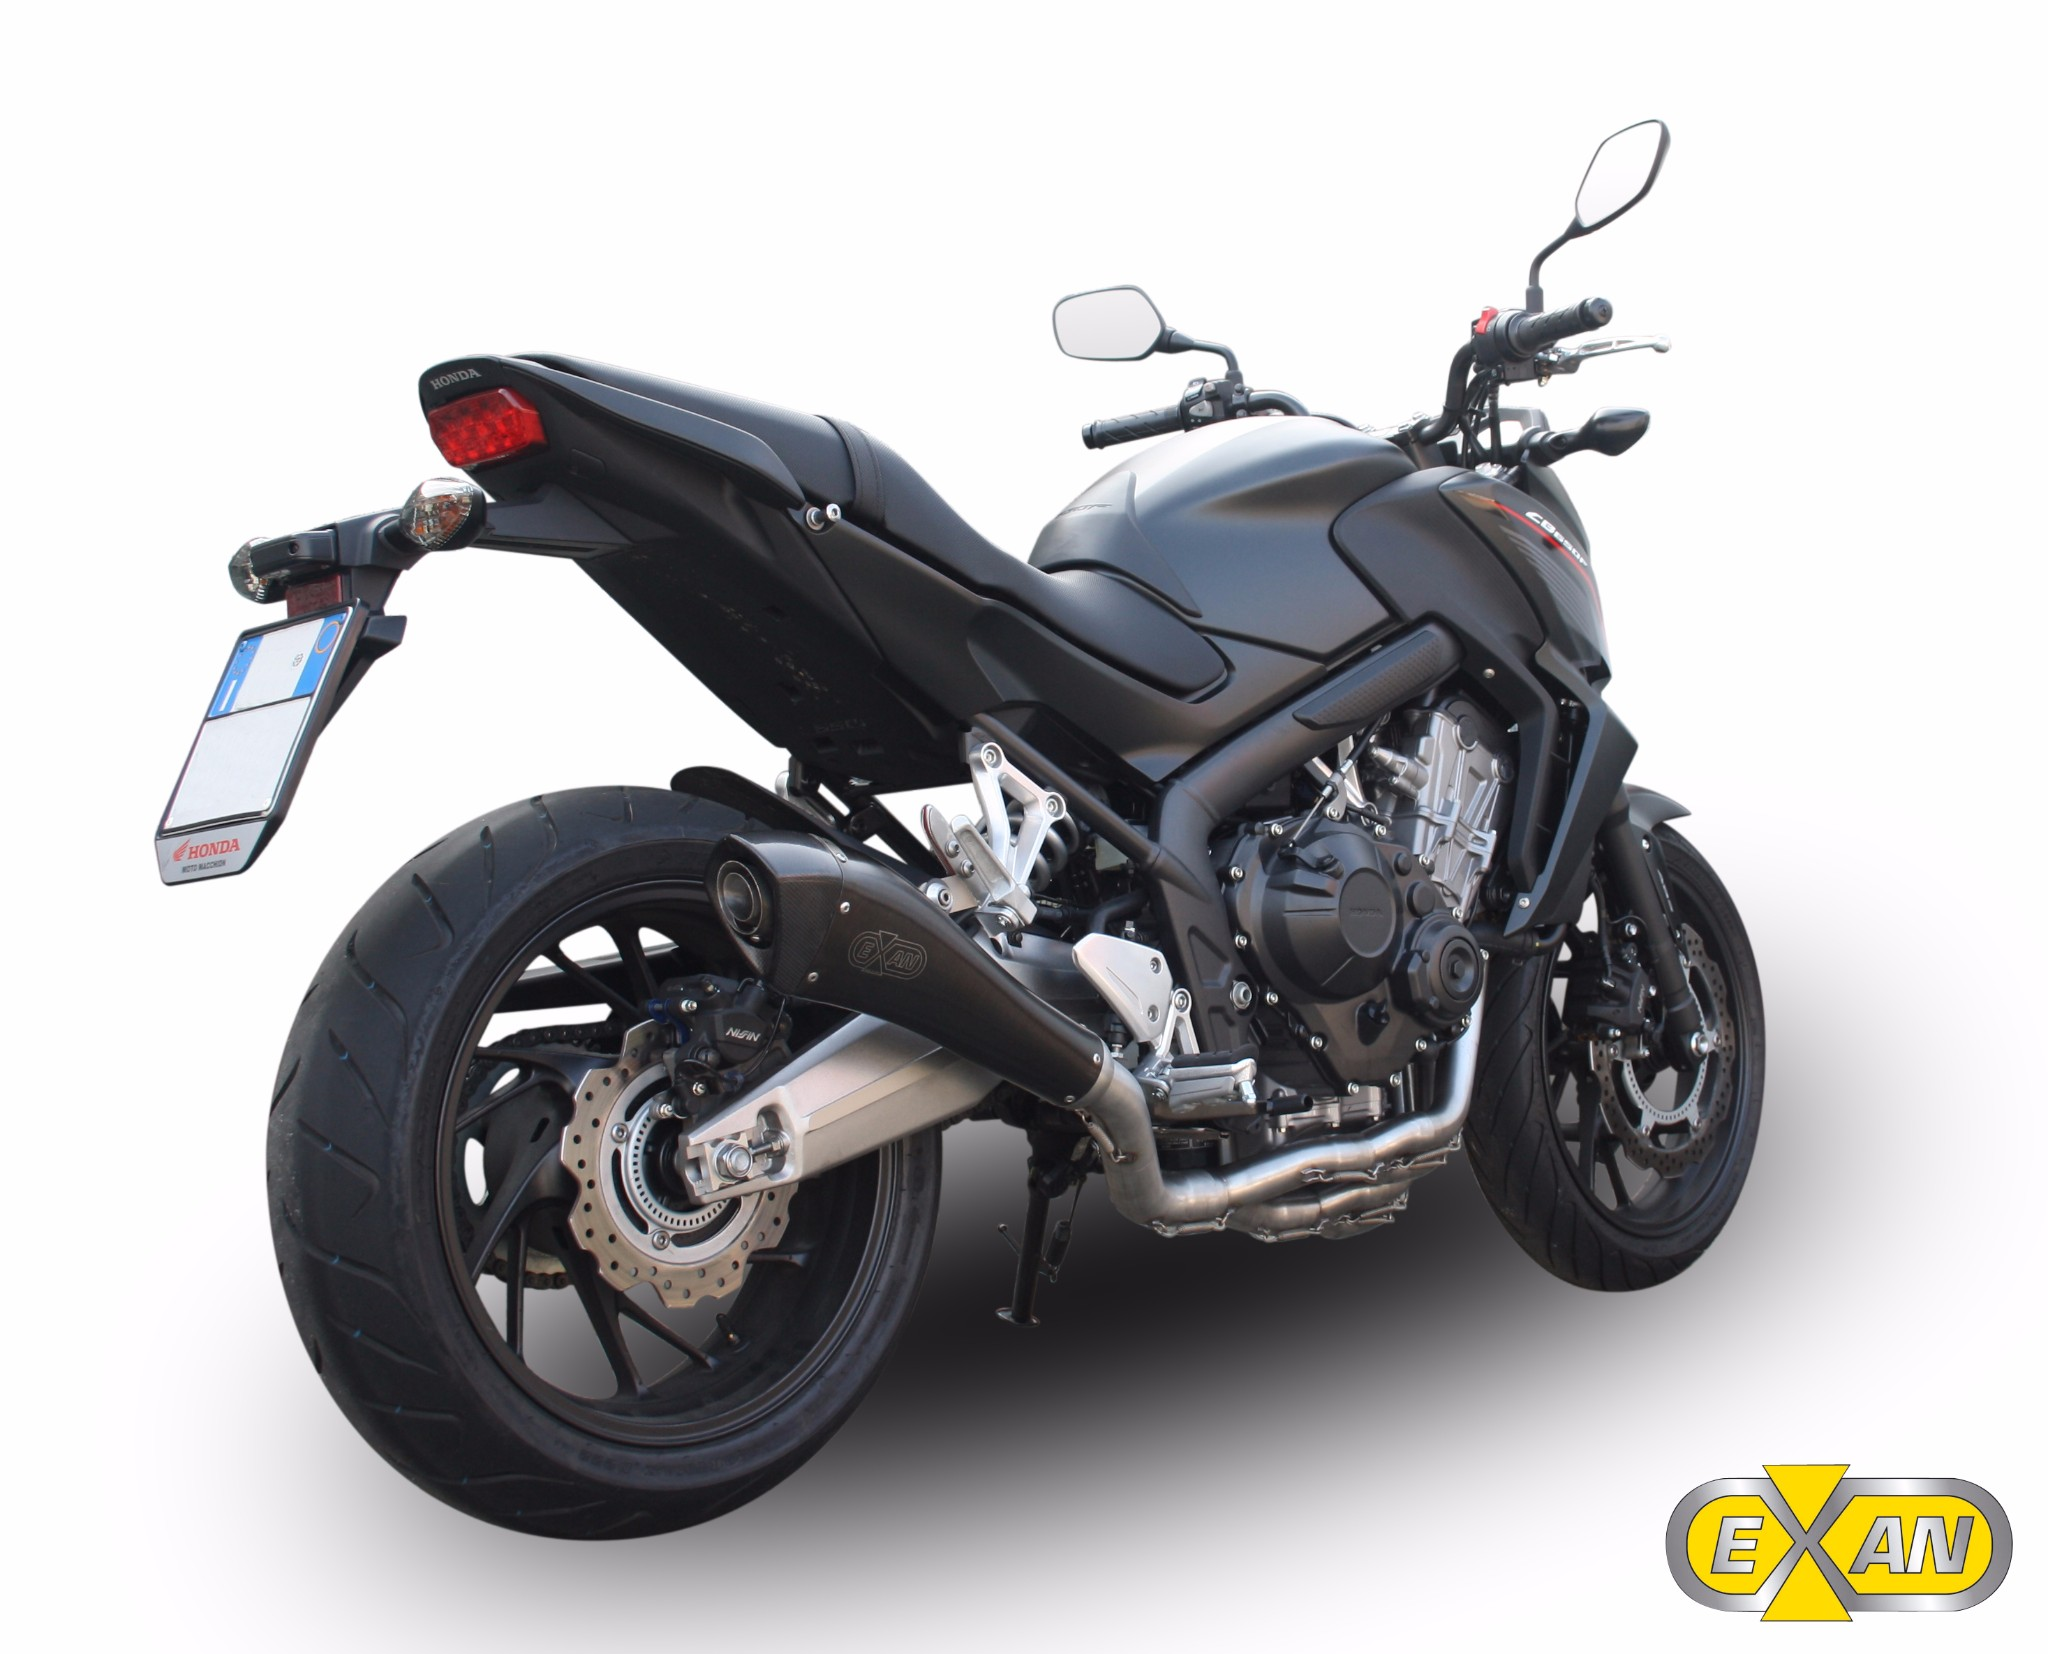 honda cb 650 f 2015 2016 exan x black evo exhaust full system carbon cap new ebay. Black Bedroom Furniture Sets. Home Design Ideas